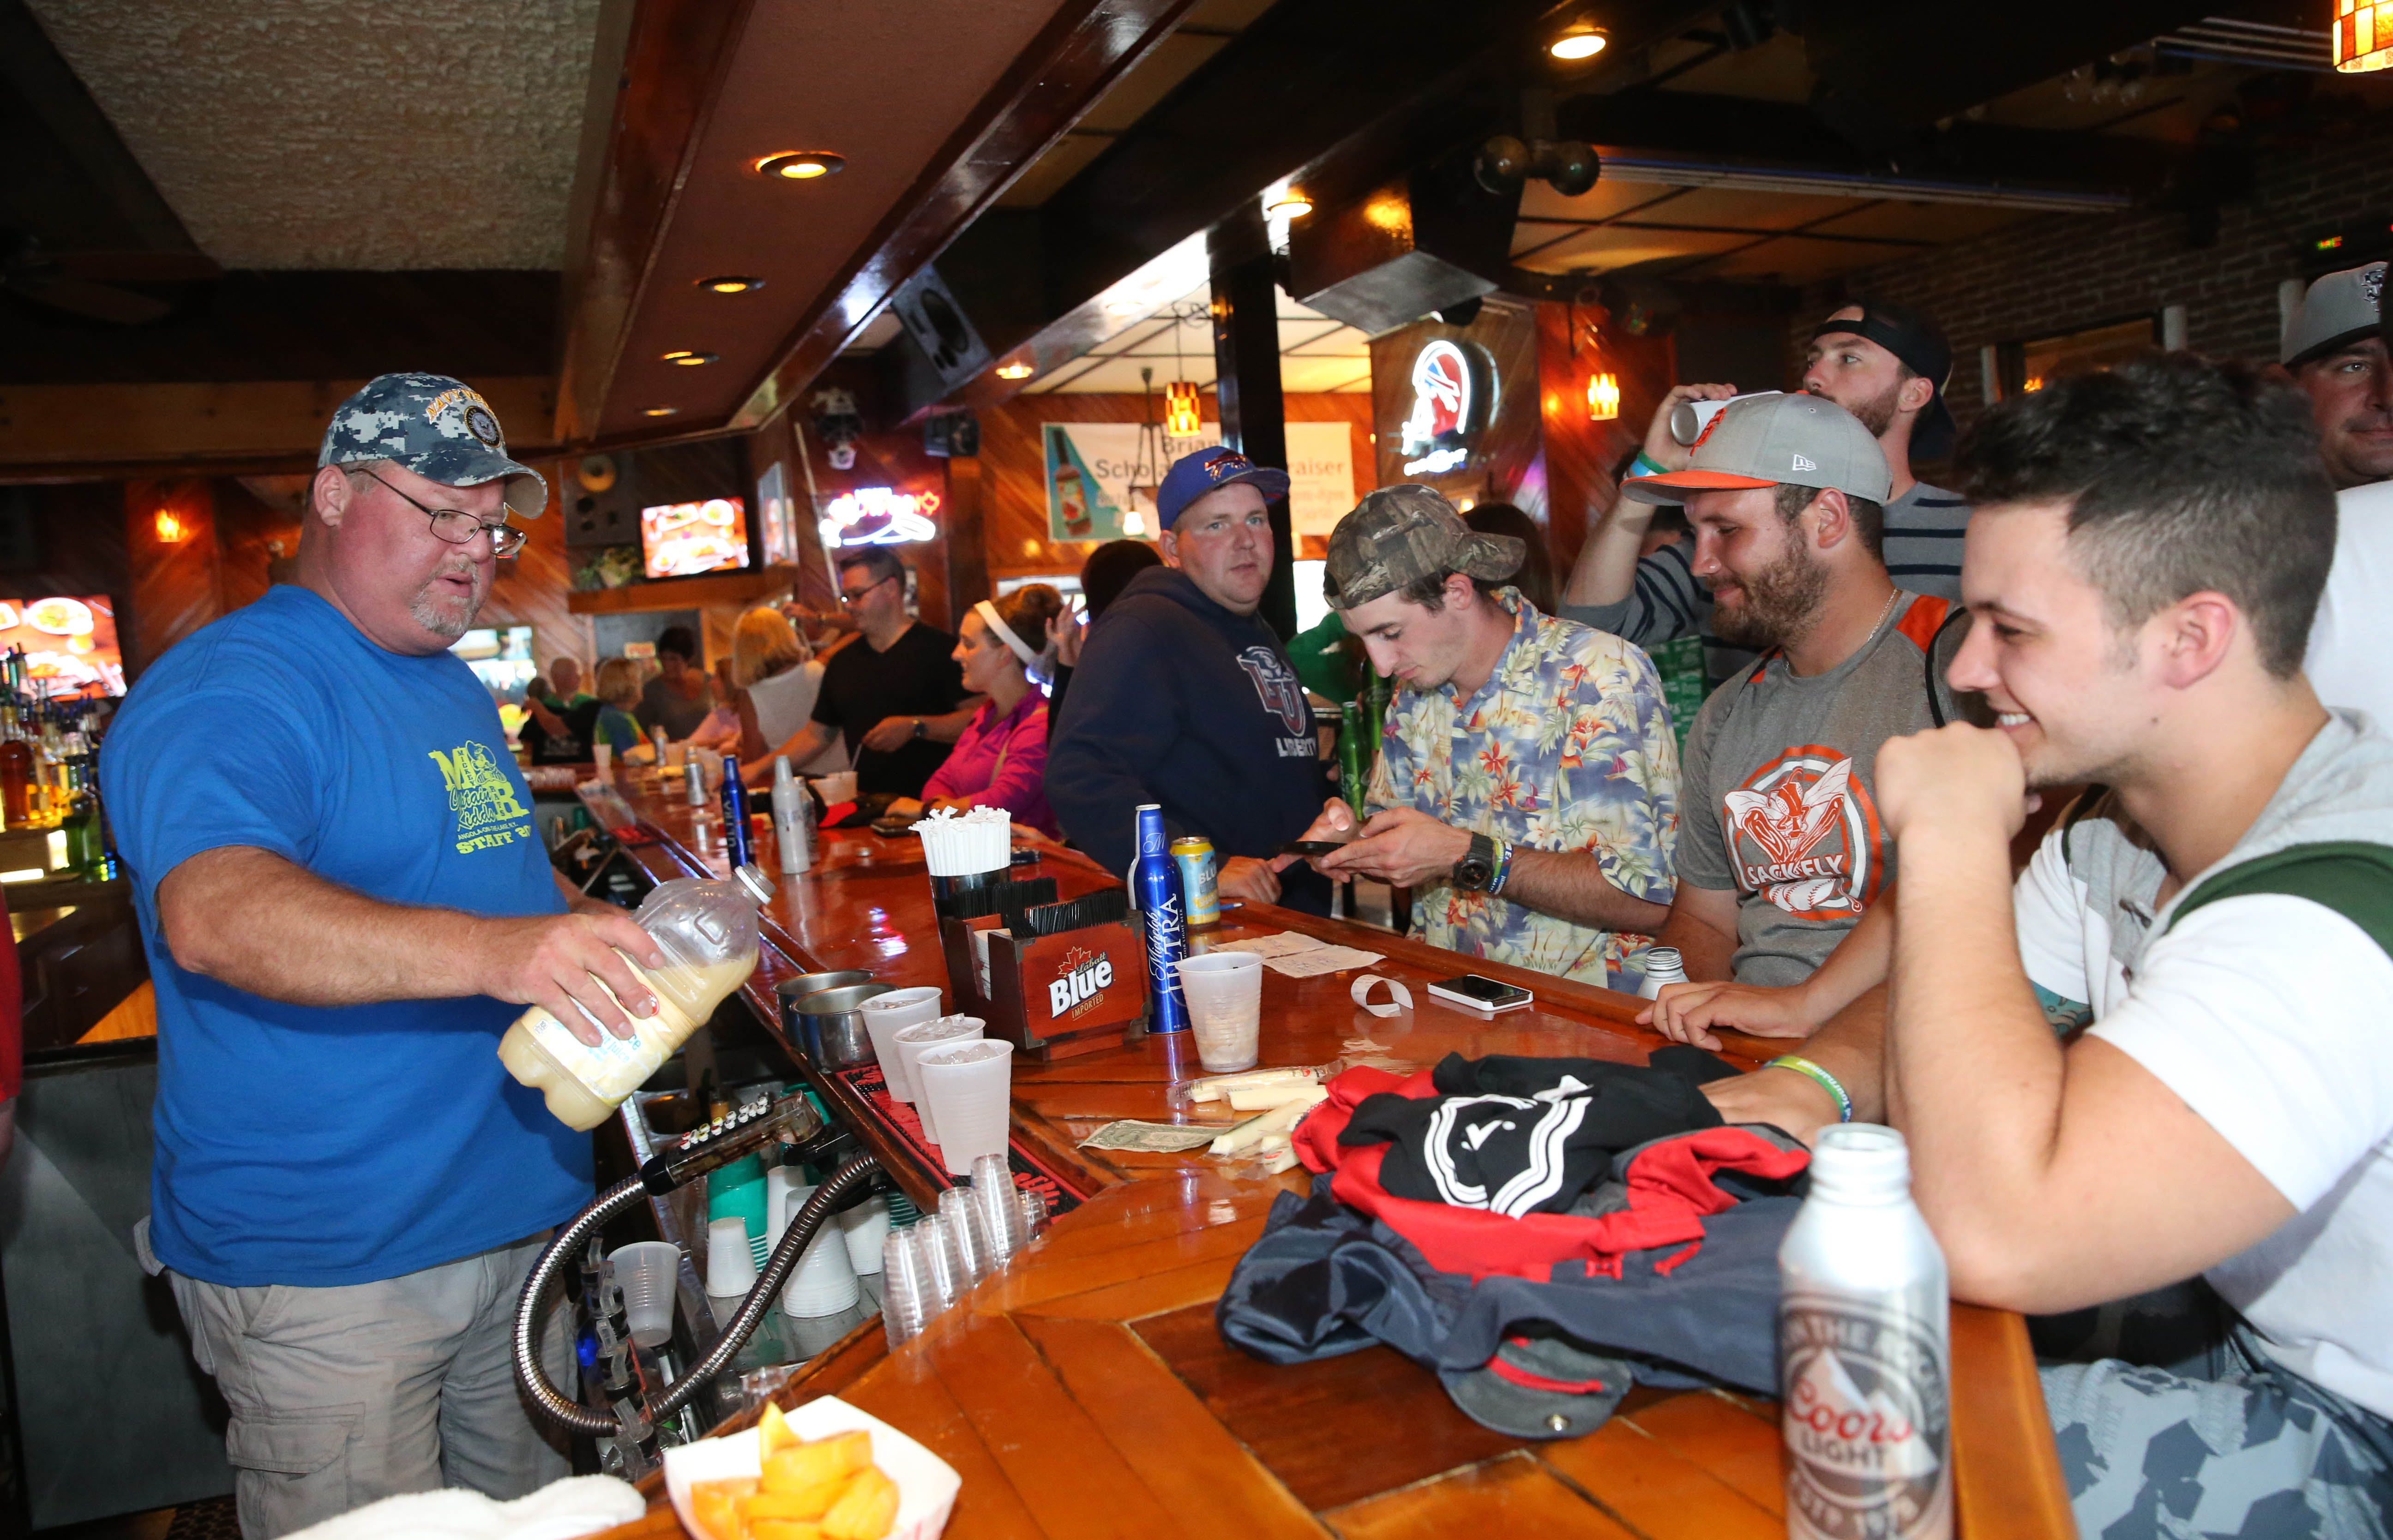 Greg Siwiec, pours drinks at Captain Kidd's in Angola Saturday, before a planned end-of-summer party later that night at the popular beach bar, which includes Mickey Rats.